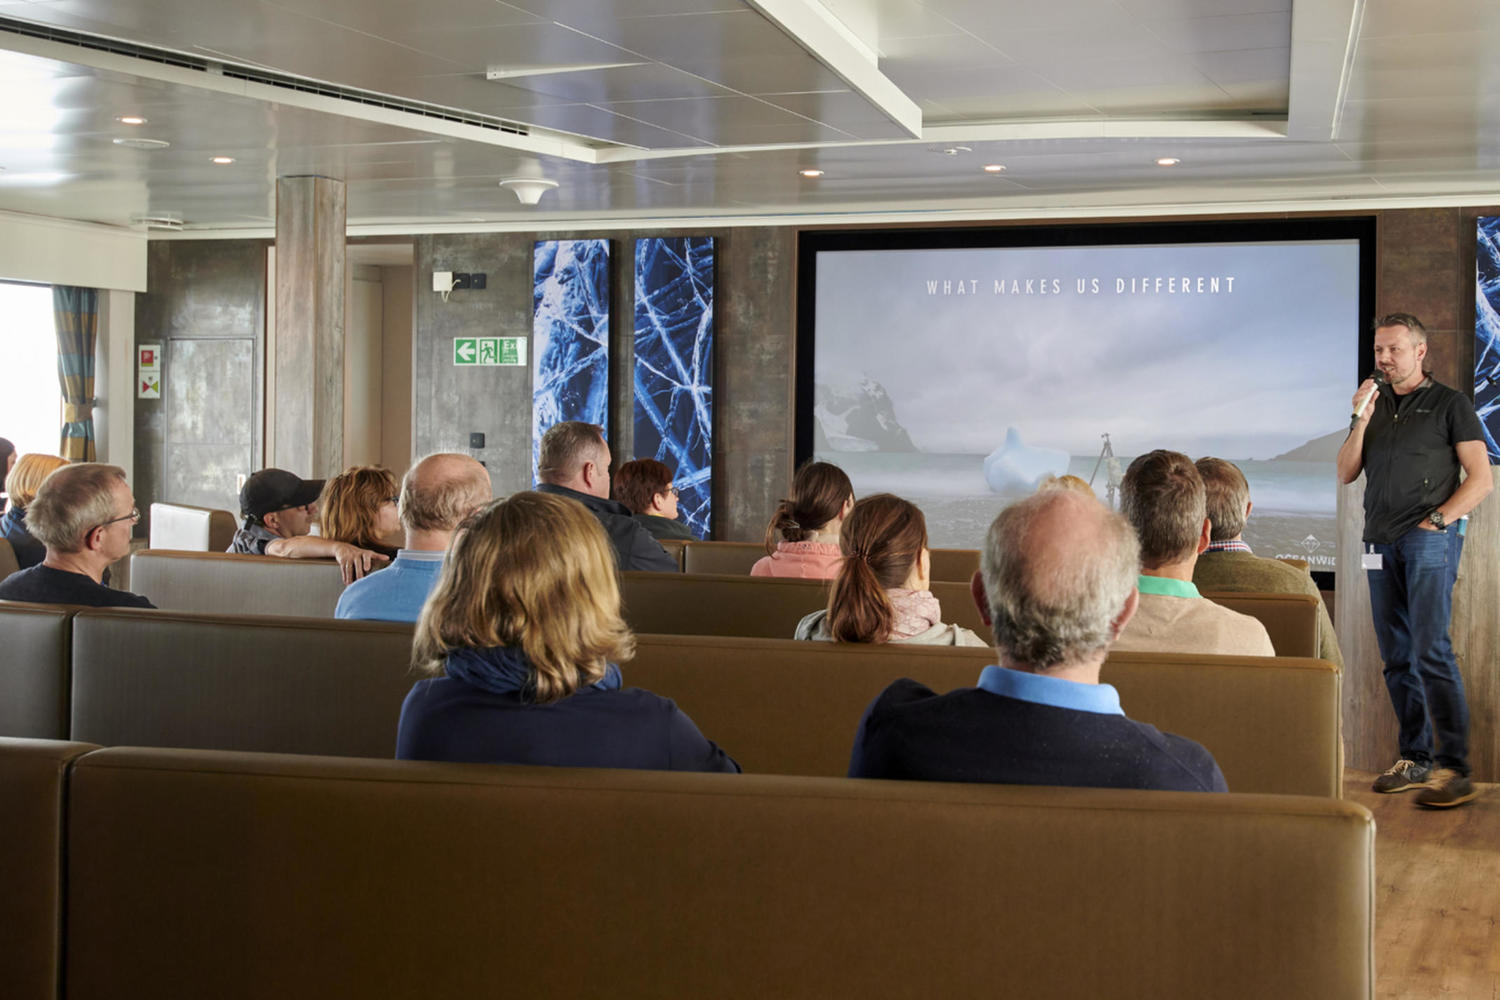 Lecture theatre aboard the M/V Hondius